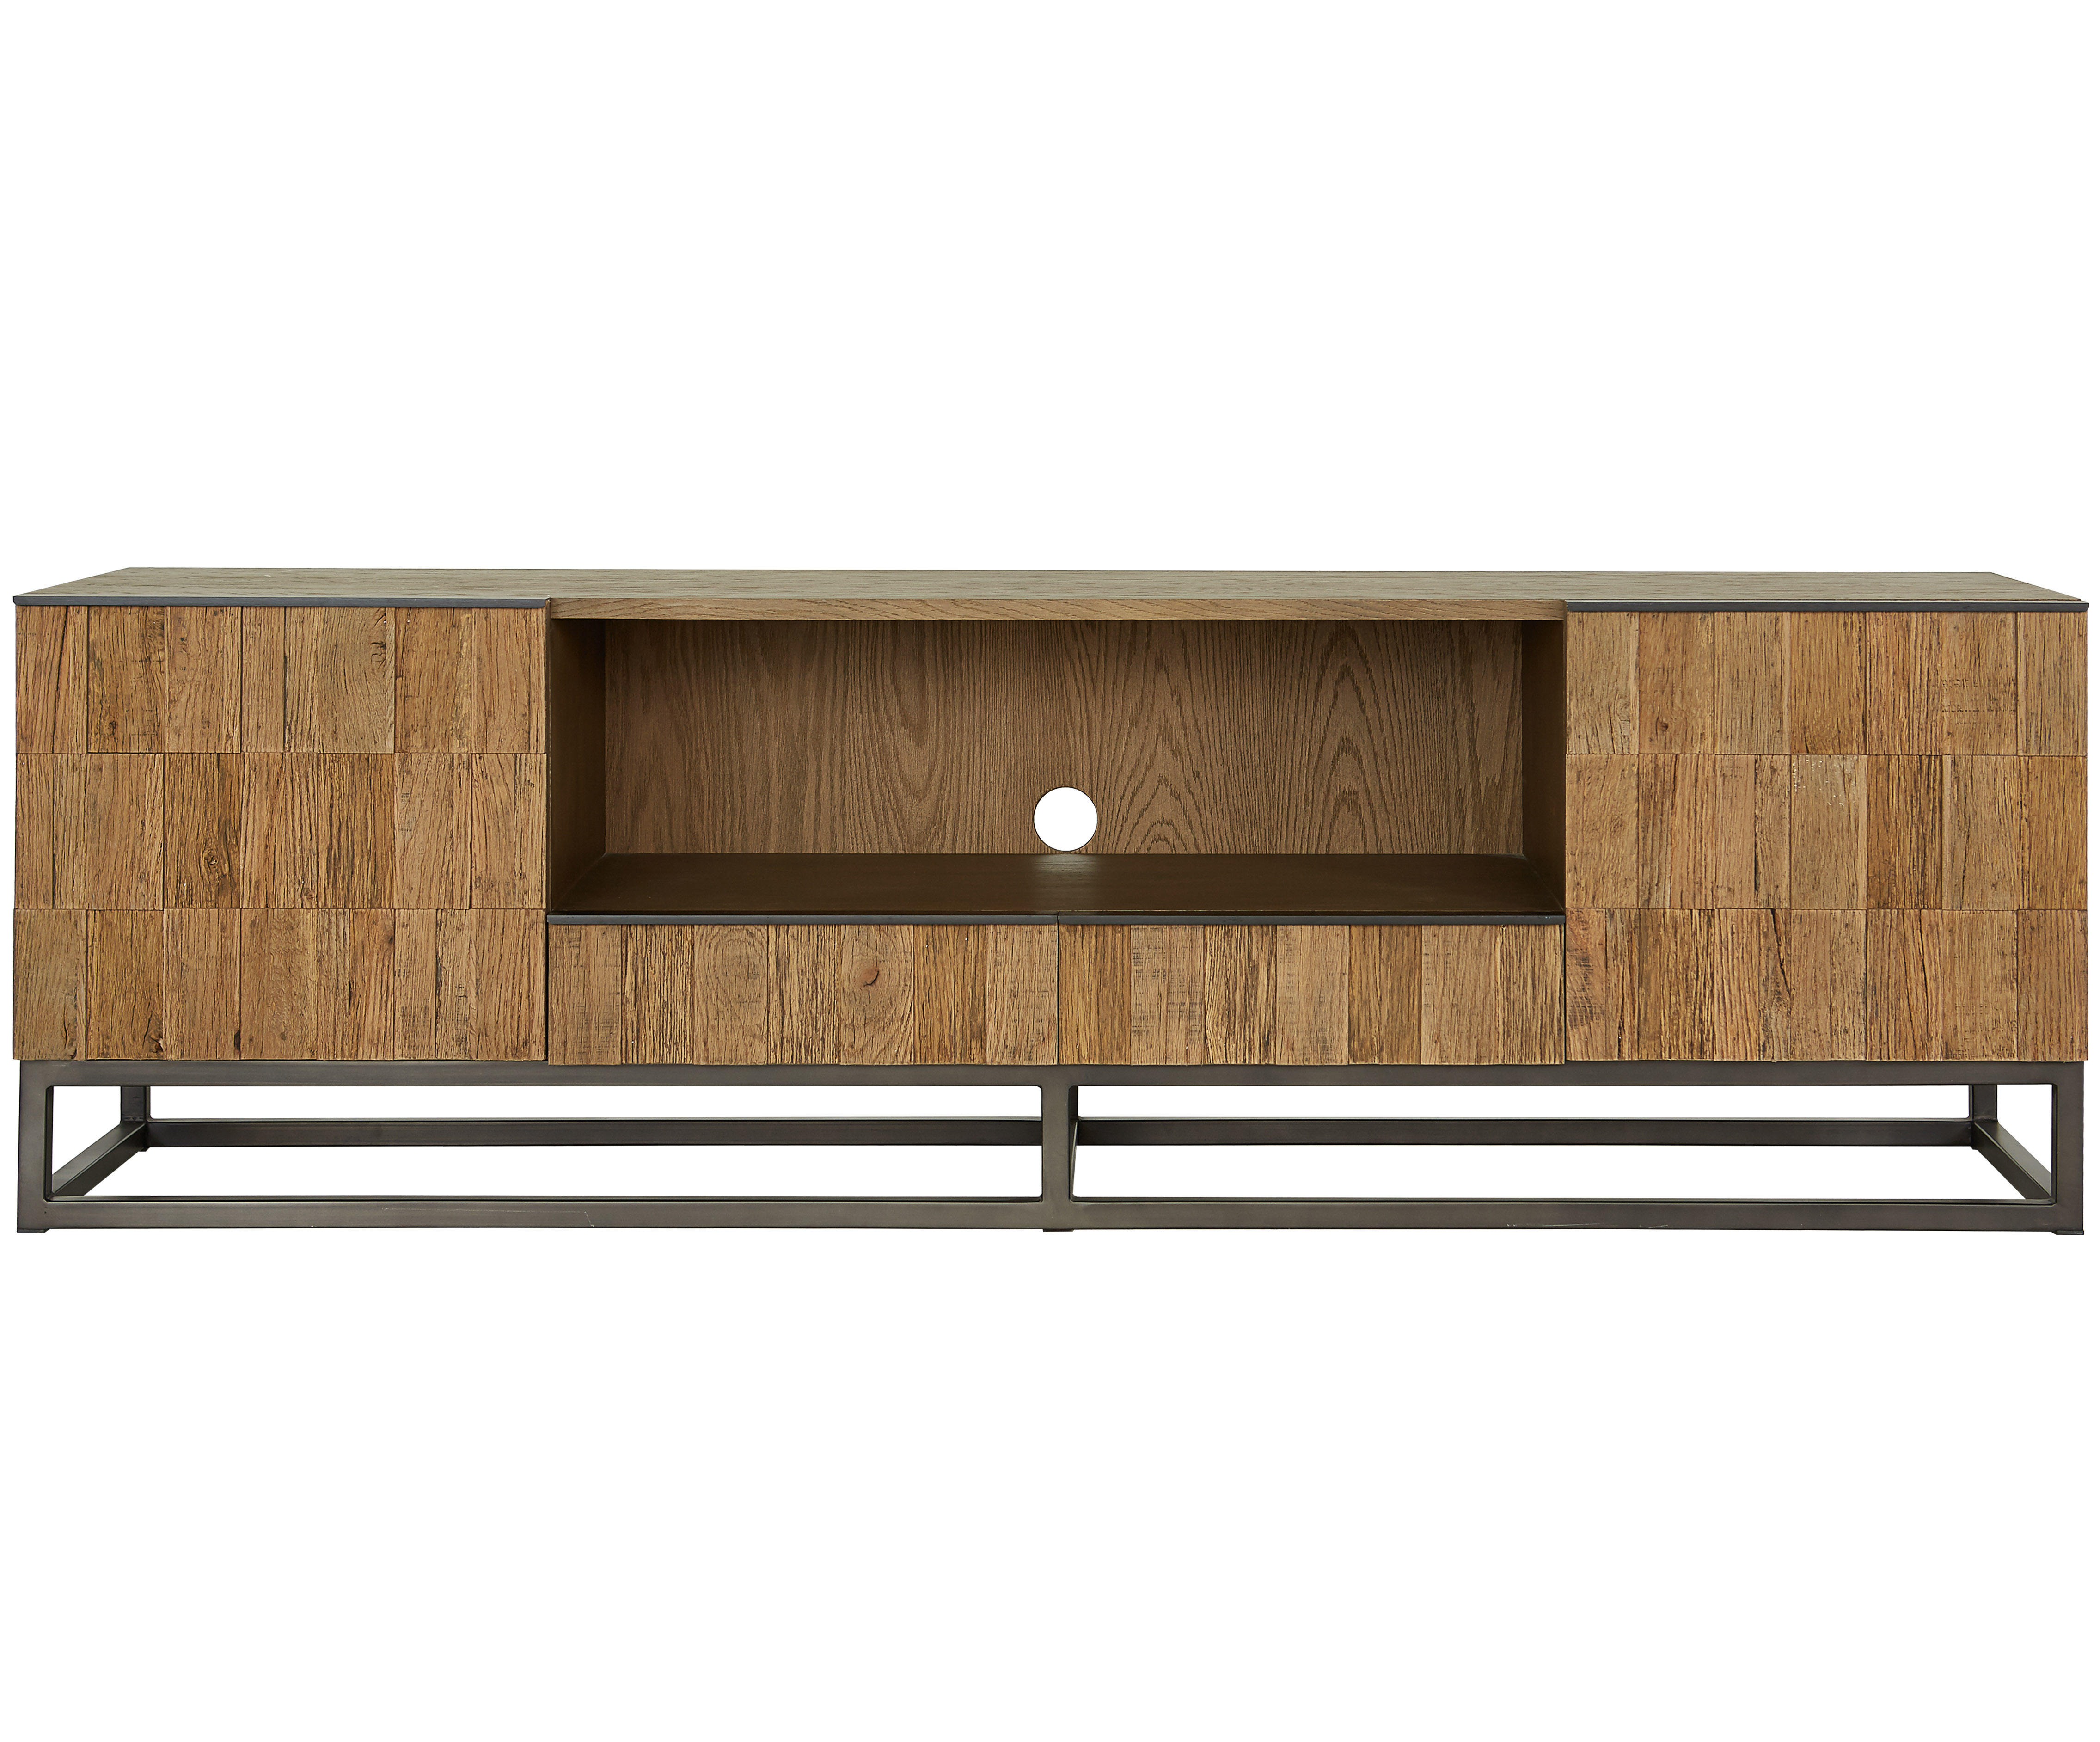 The fine quality wood furniture living room modern tv stands